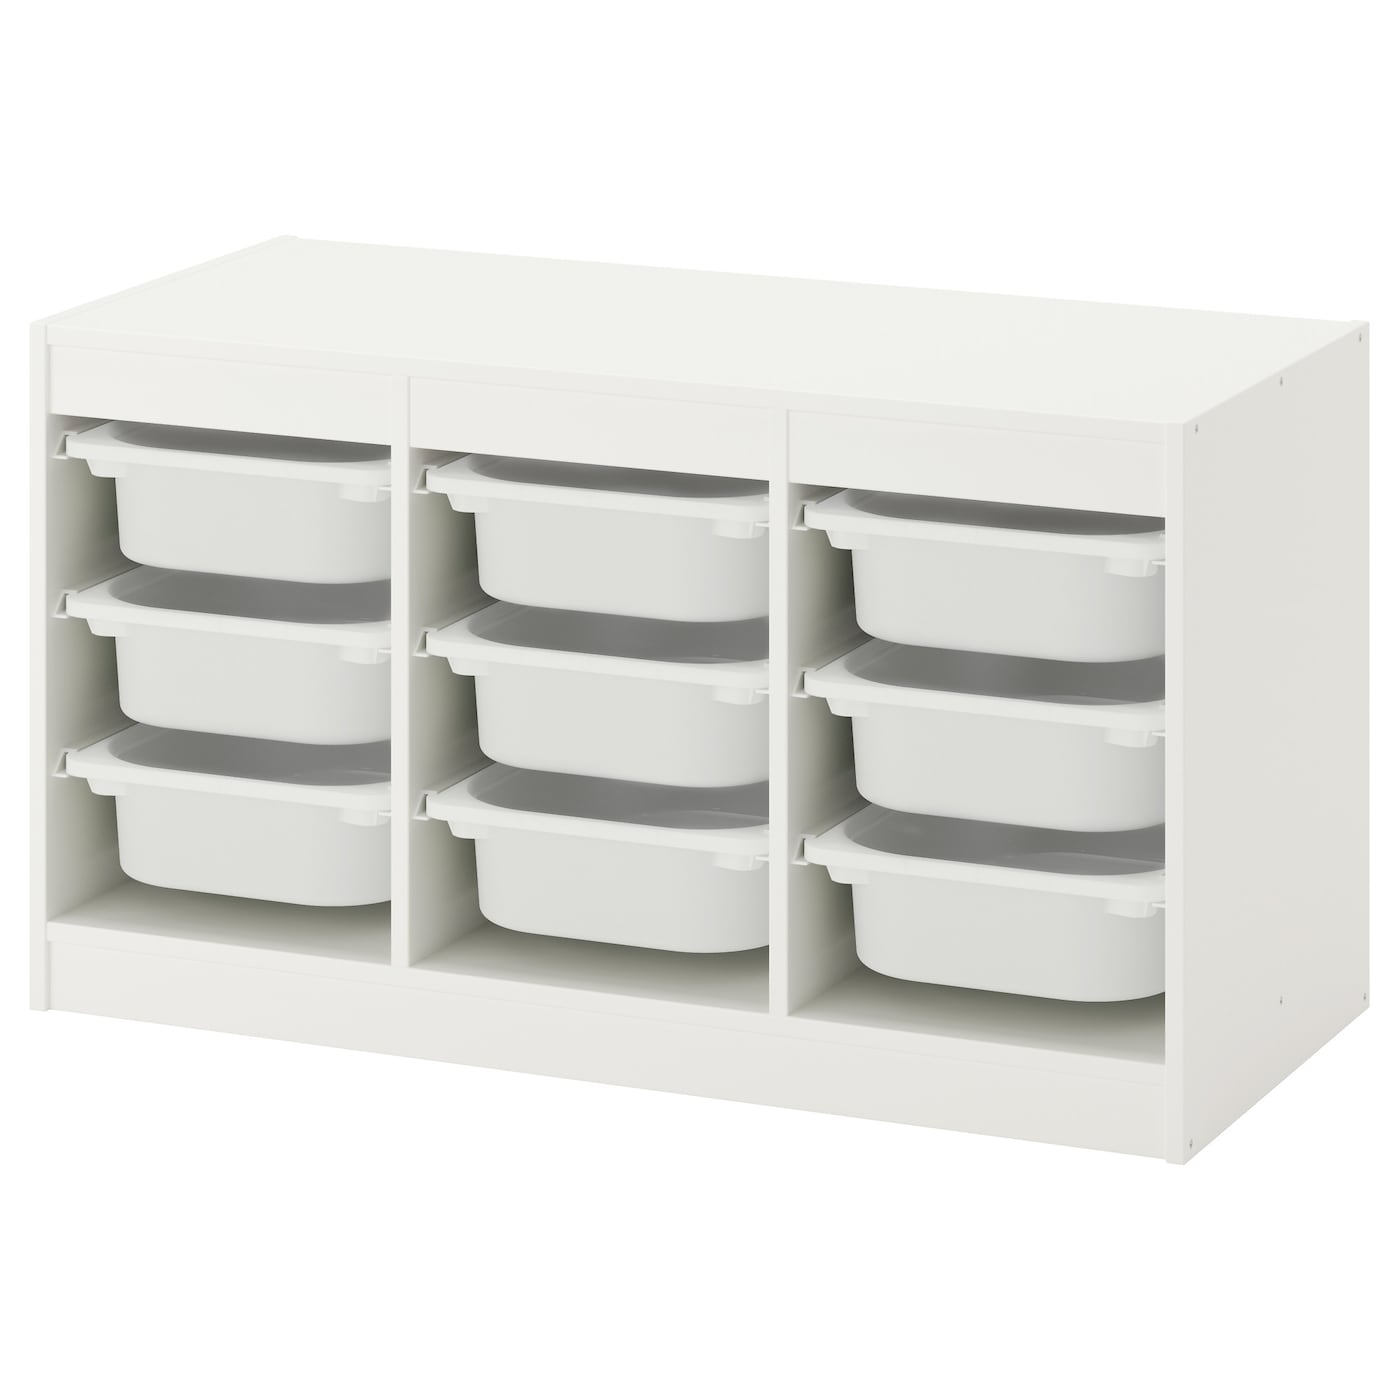 trofast storage combination with boxes white white 99x56x44 cm ikea. Black Bedroom Furniture Sets. Home Design Ideas